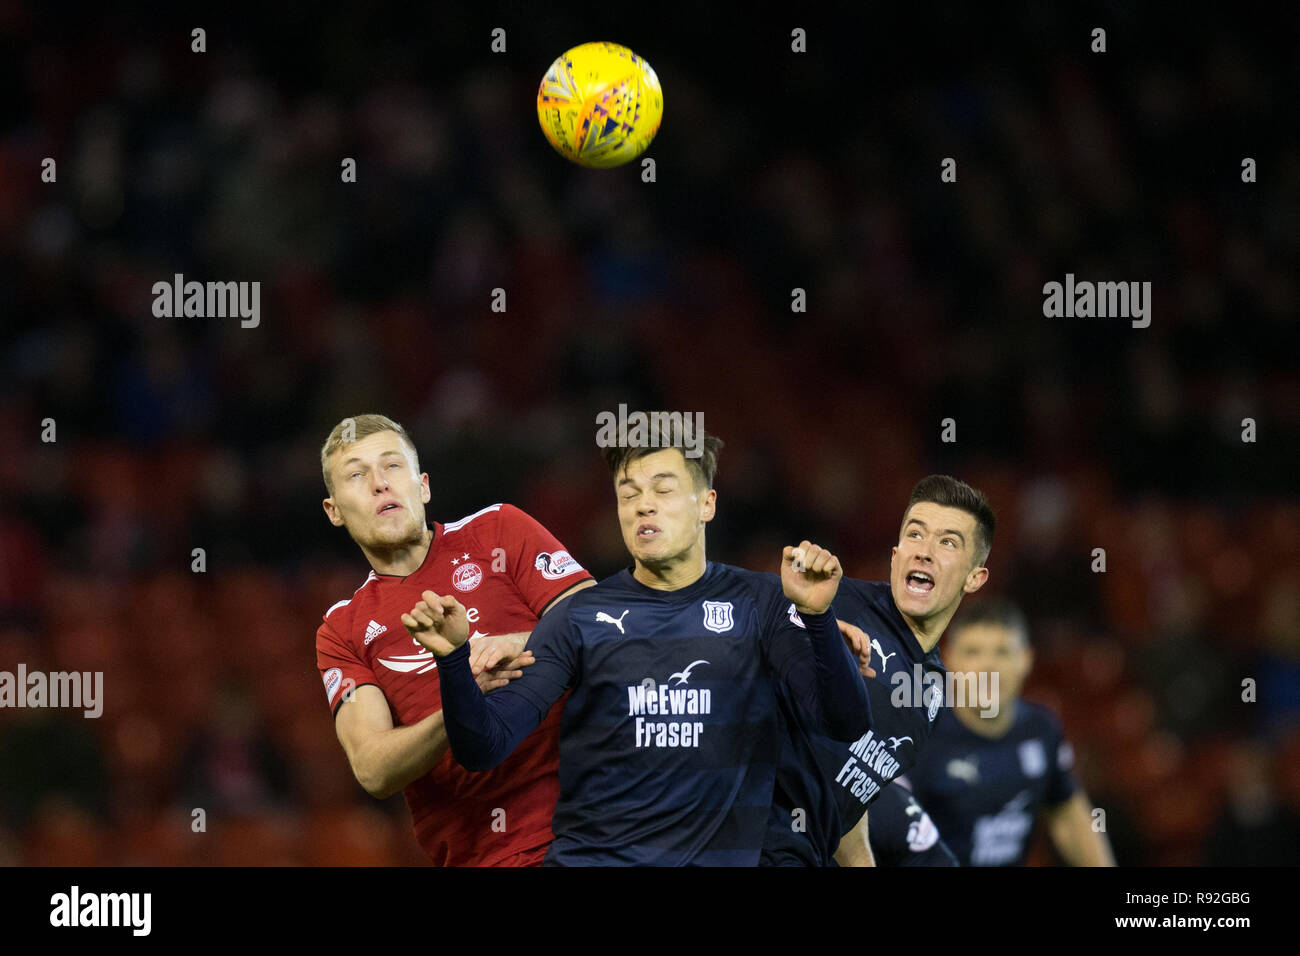 Pittodrie Stadium, Aberdeen, UK. 18th Dec, 2018. Ladbrokes Premiership football, Aberdeen versus Dundee; Sam Cosgrove of Aberdeen competes in the air with Jesse Curran and Cammy Kerr of Dundee Credit: Action Plus Sports/Alamy Live News - Stock Image